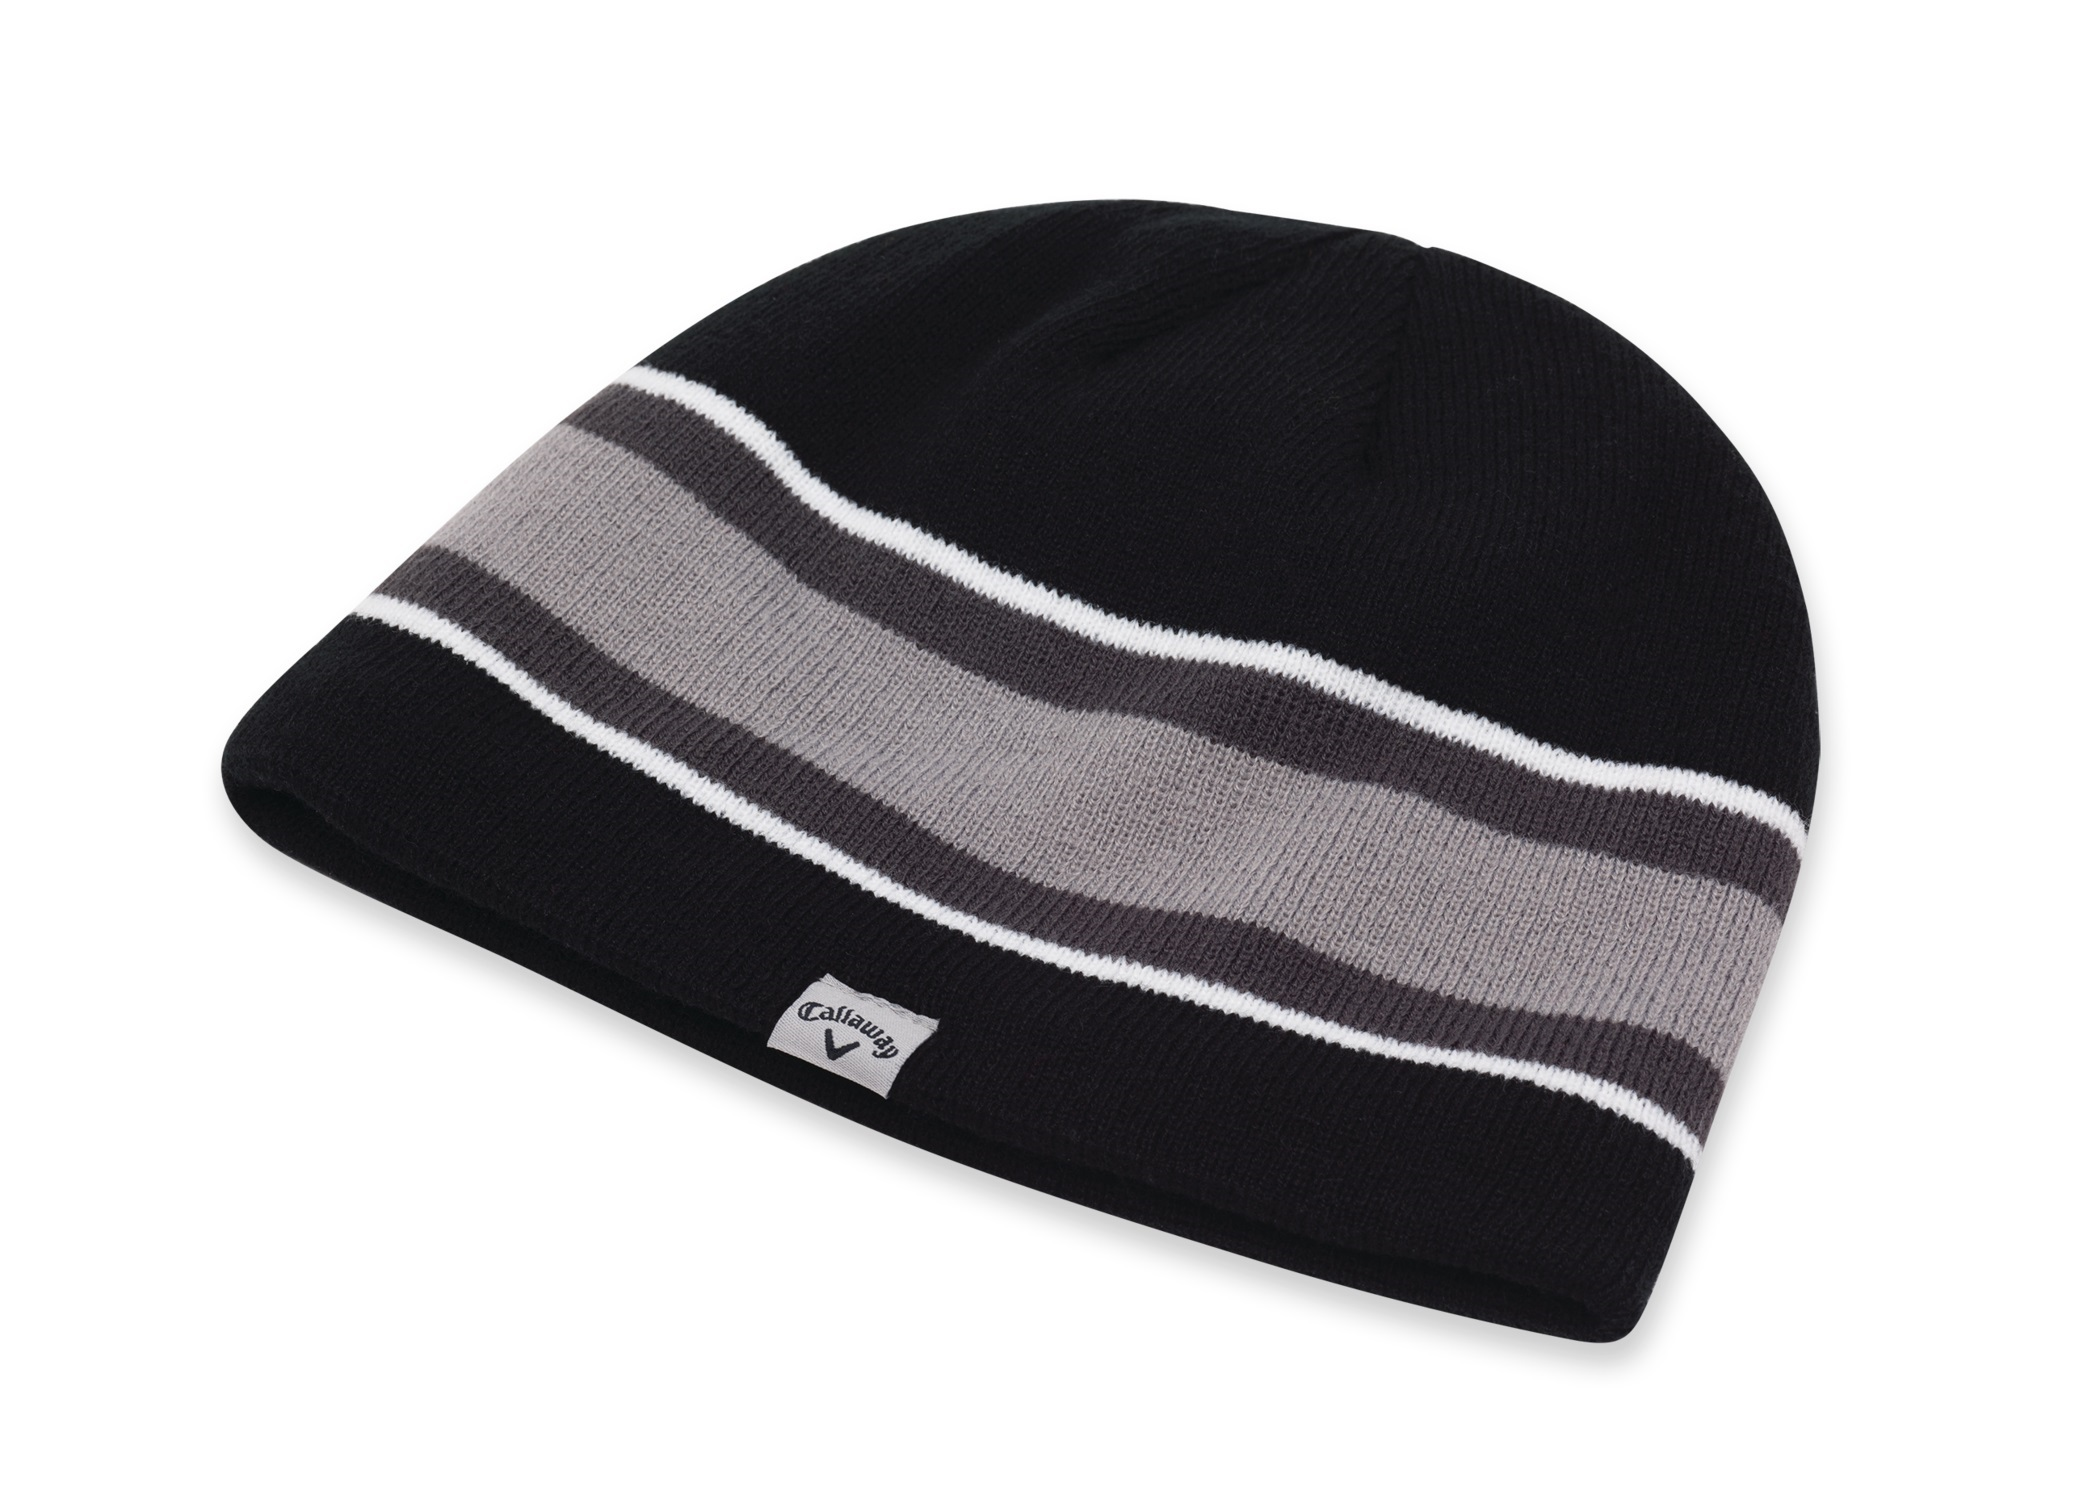 d70f405461f CALLAWAY GOLF WINTER CHILL BEANIE OSFA WINTER CAP - NEW 2018 - PICK ...